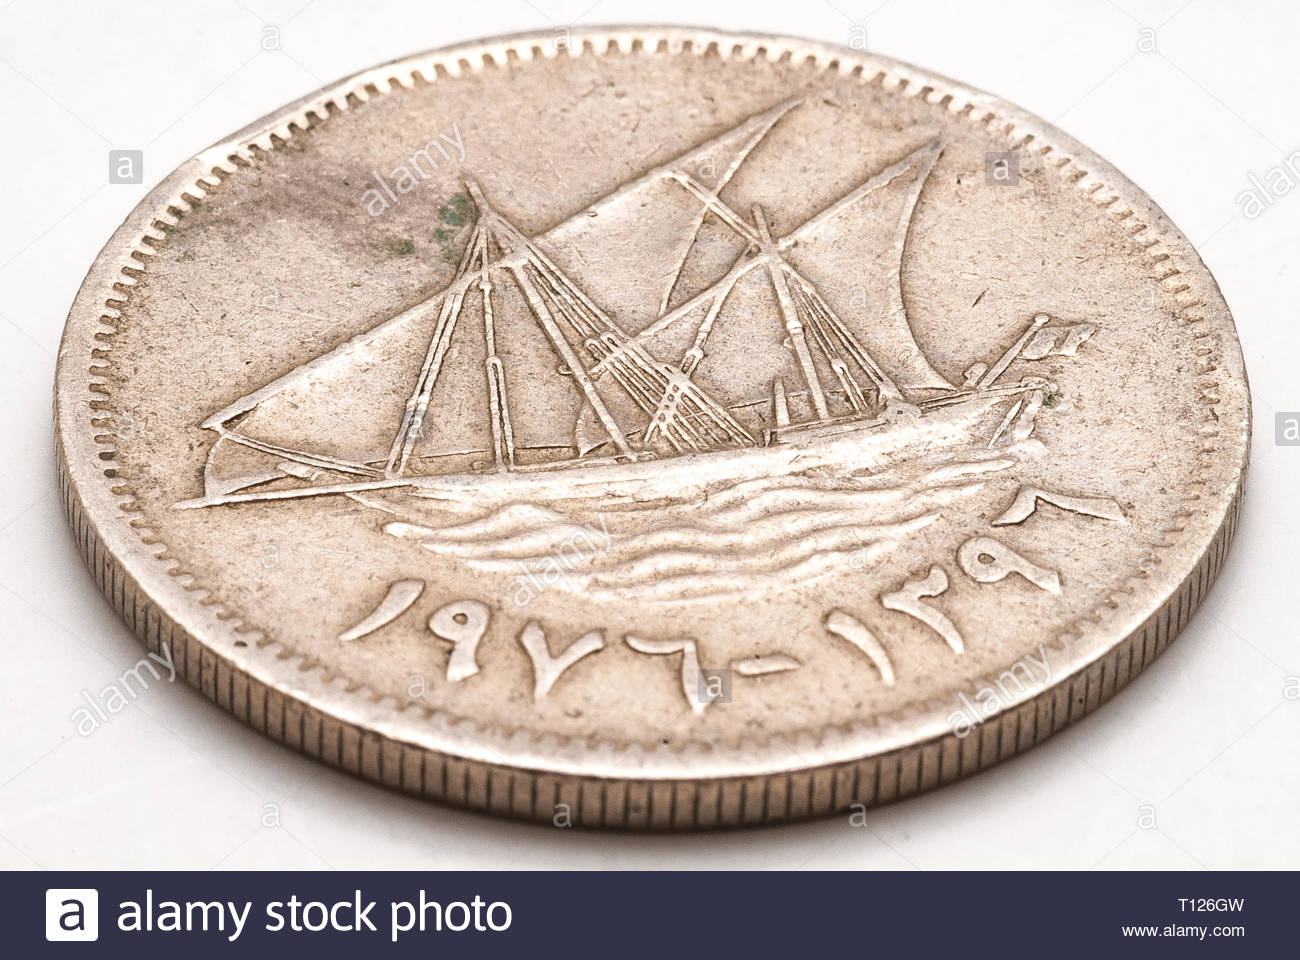 An old silver colored Kuwati dinar coin - Stock Image